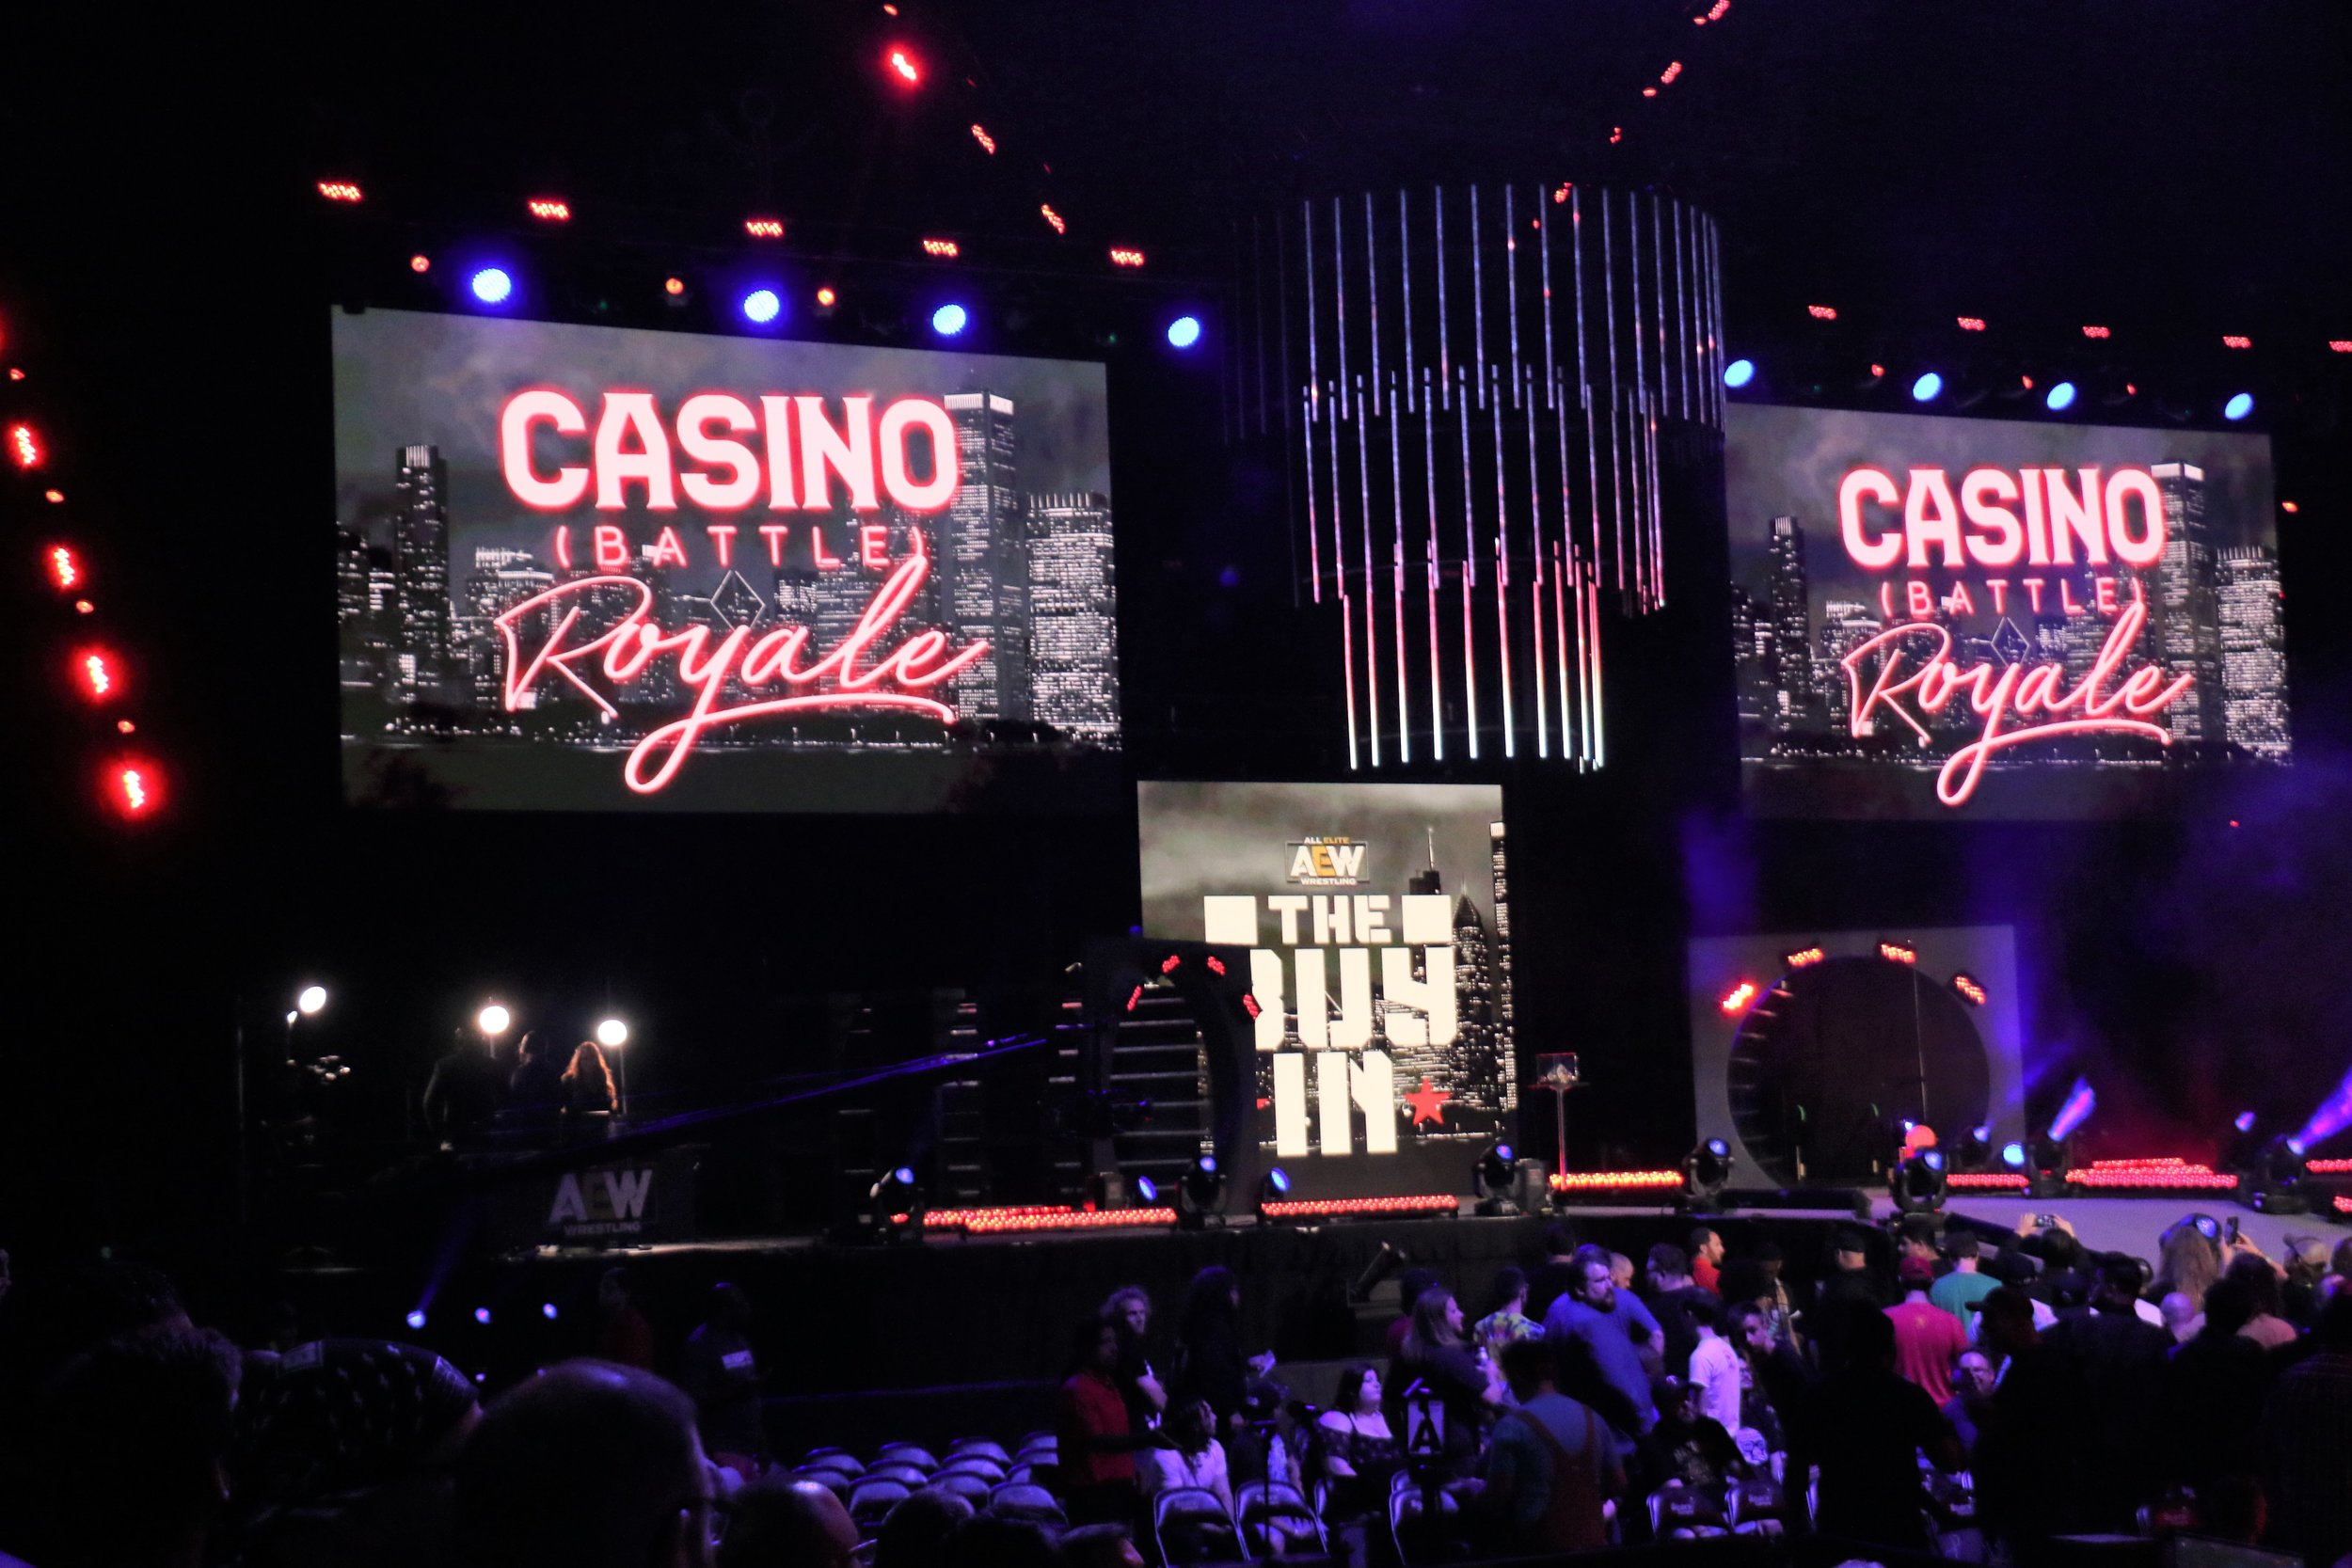 The Casino Battle Royale to determine a top contender for the AEW Women's Championship.